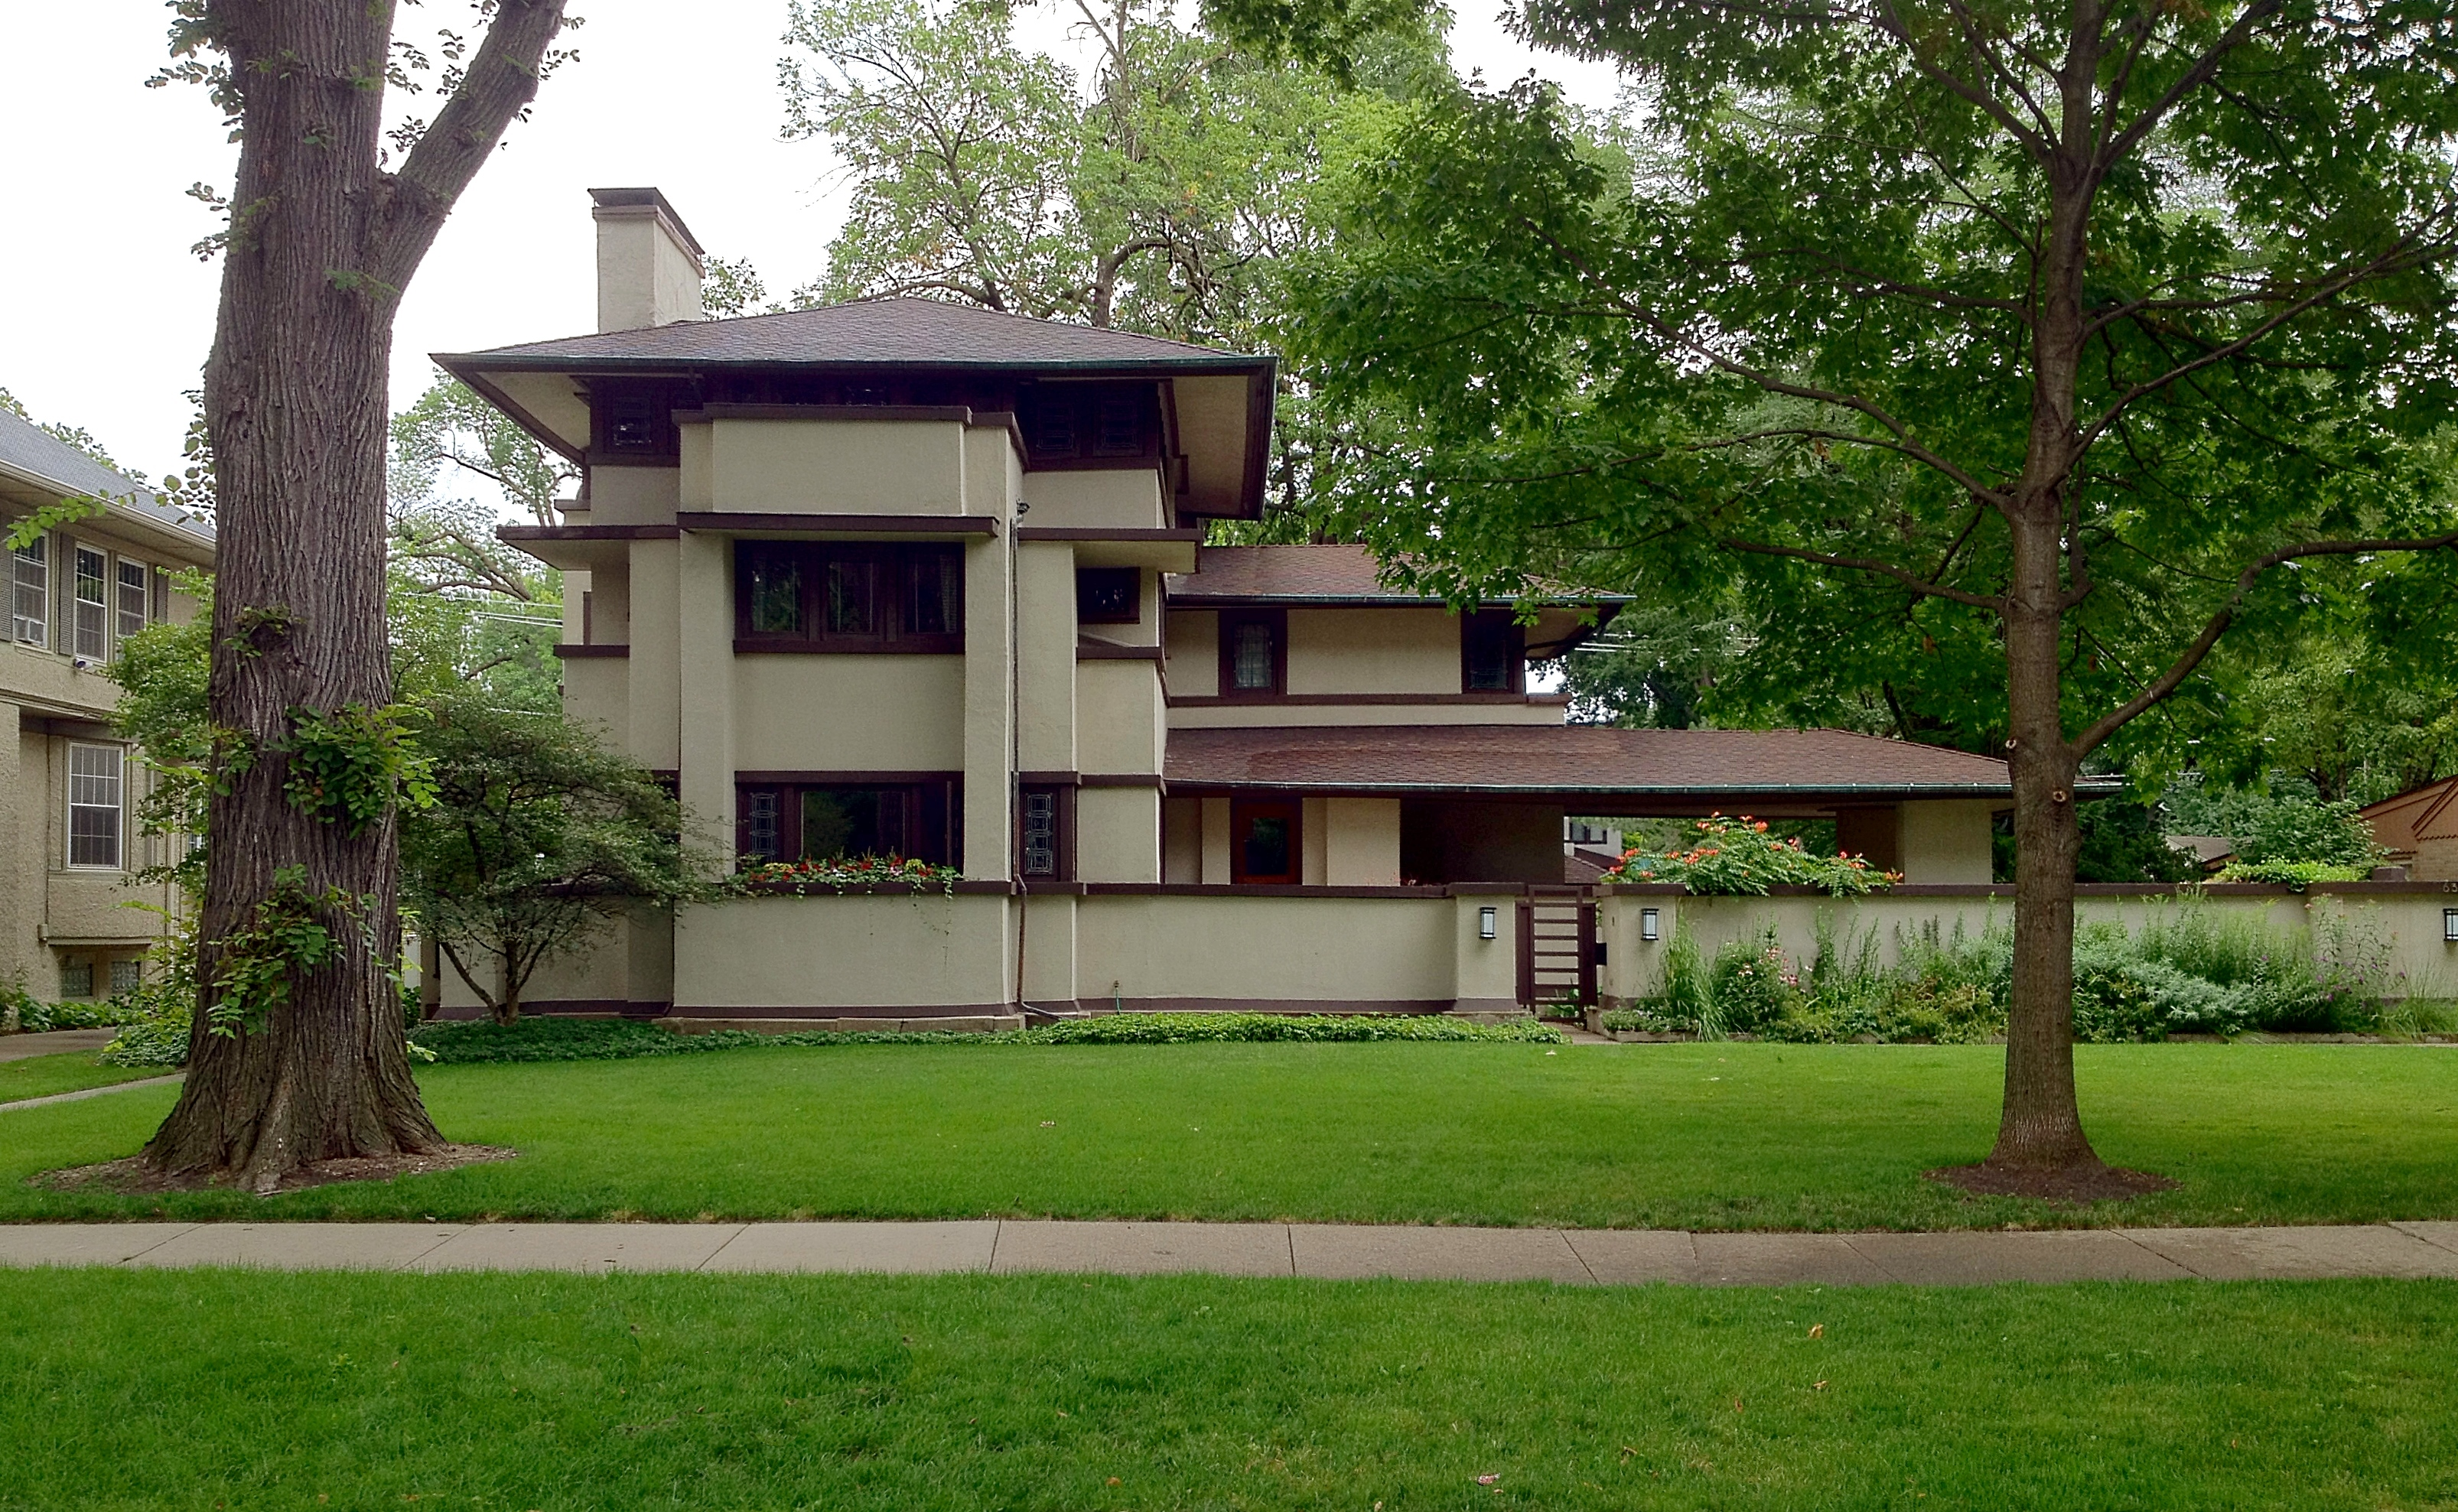 Frank Lloyd Wright Prairie Style House Plans | Frank Lloyd Wright S Oak Park Illinois Designs The Prairie Period